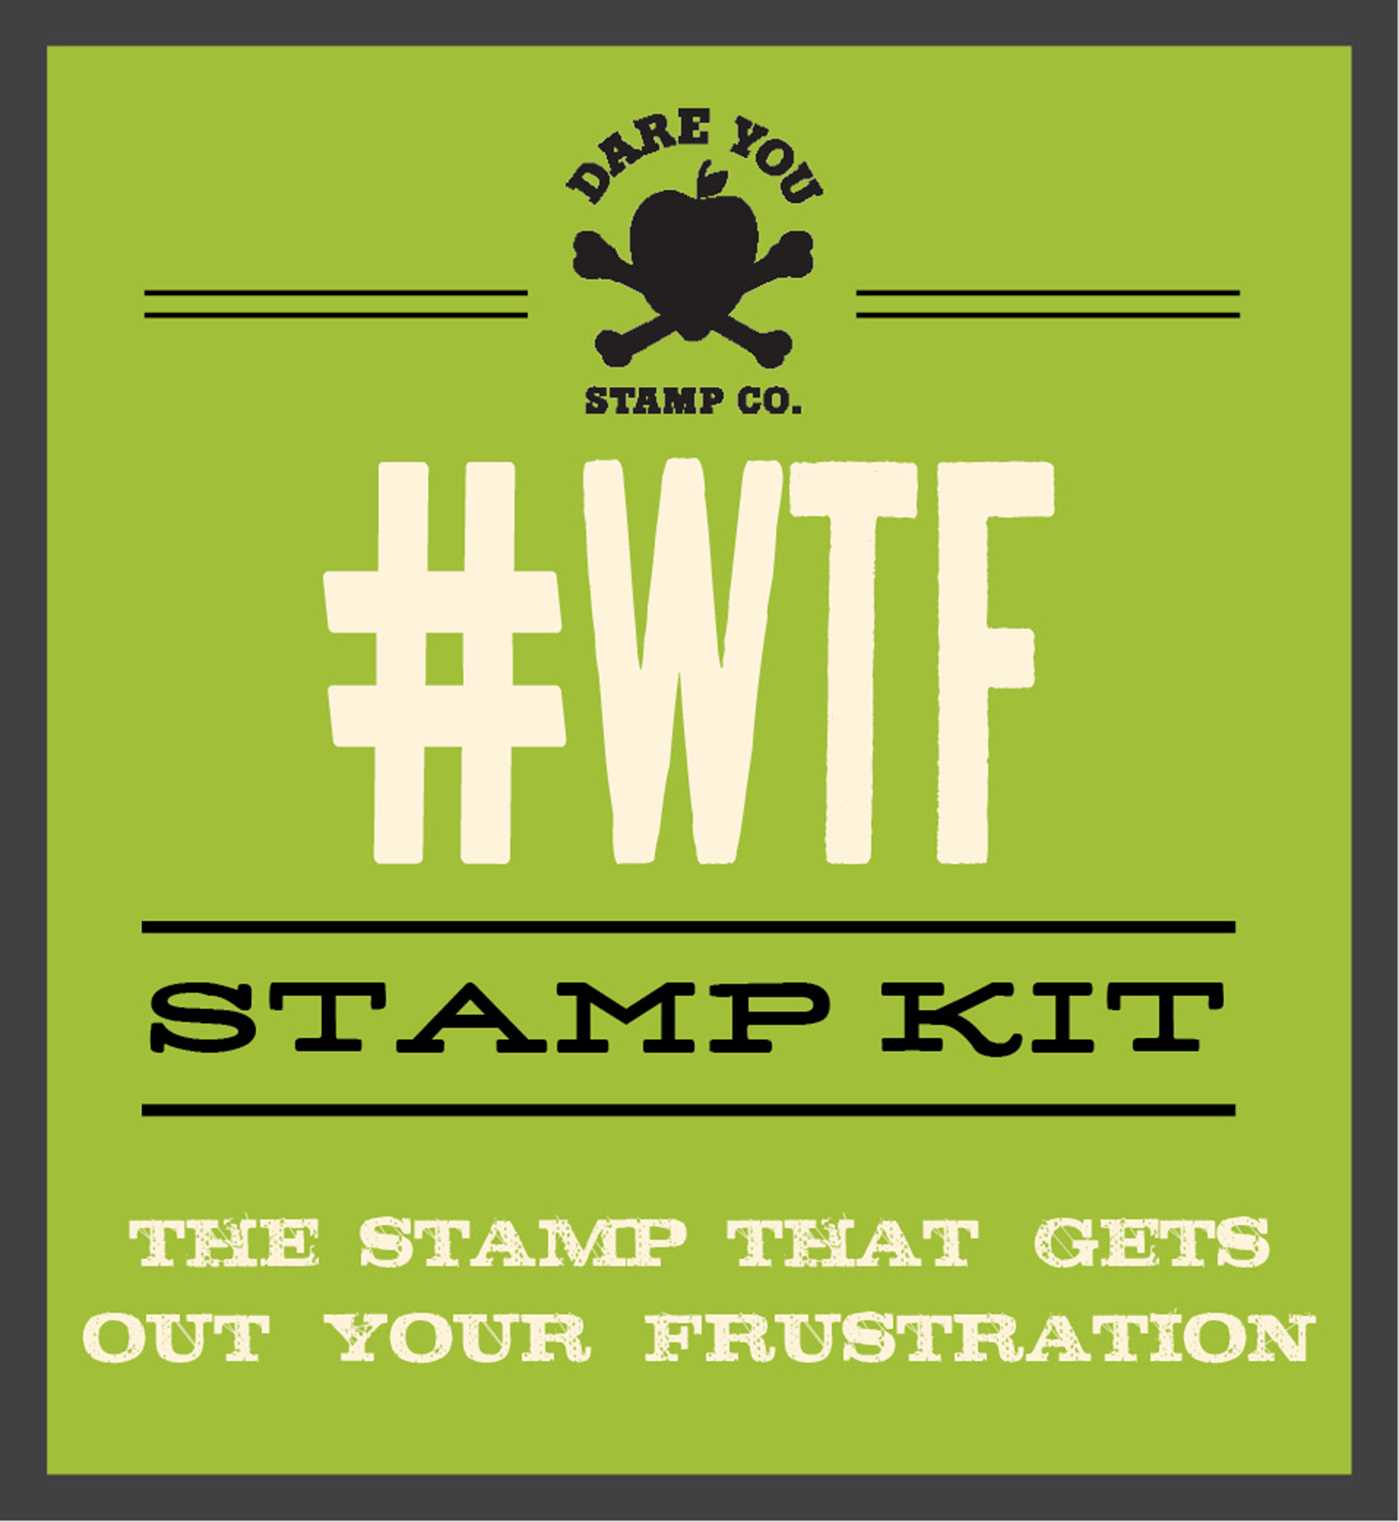 Wtf stamp kit 9781604336658 hr